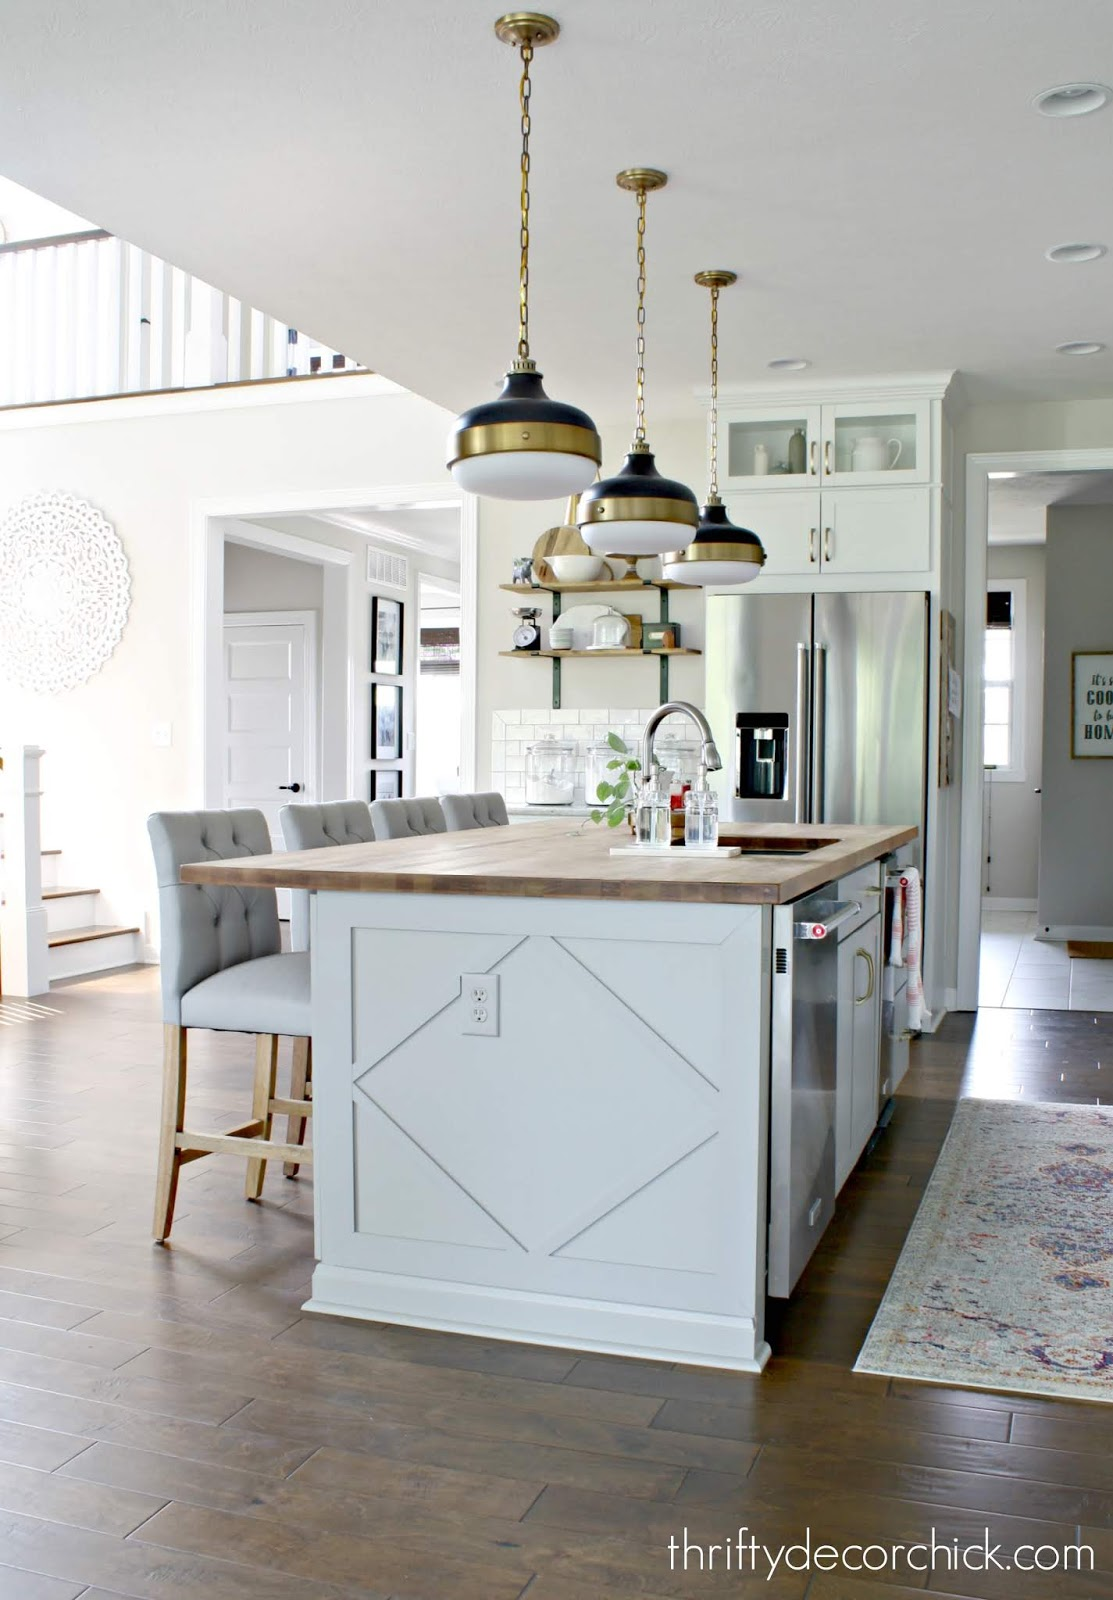 Adding custom detail to a plain kitchen island from Thrifty Decor Chick